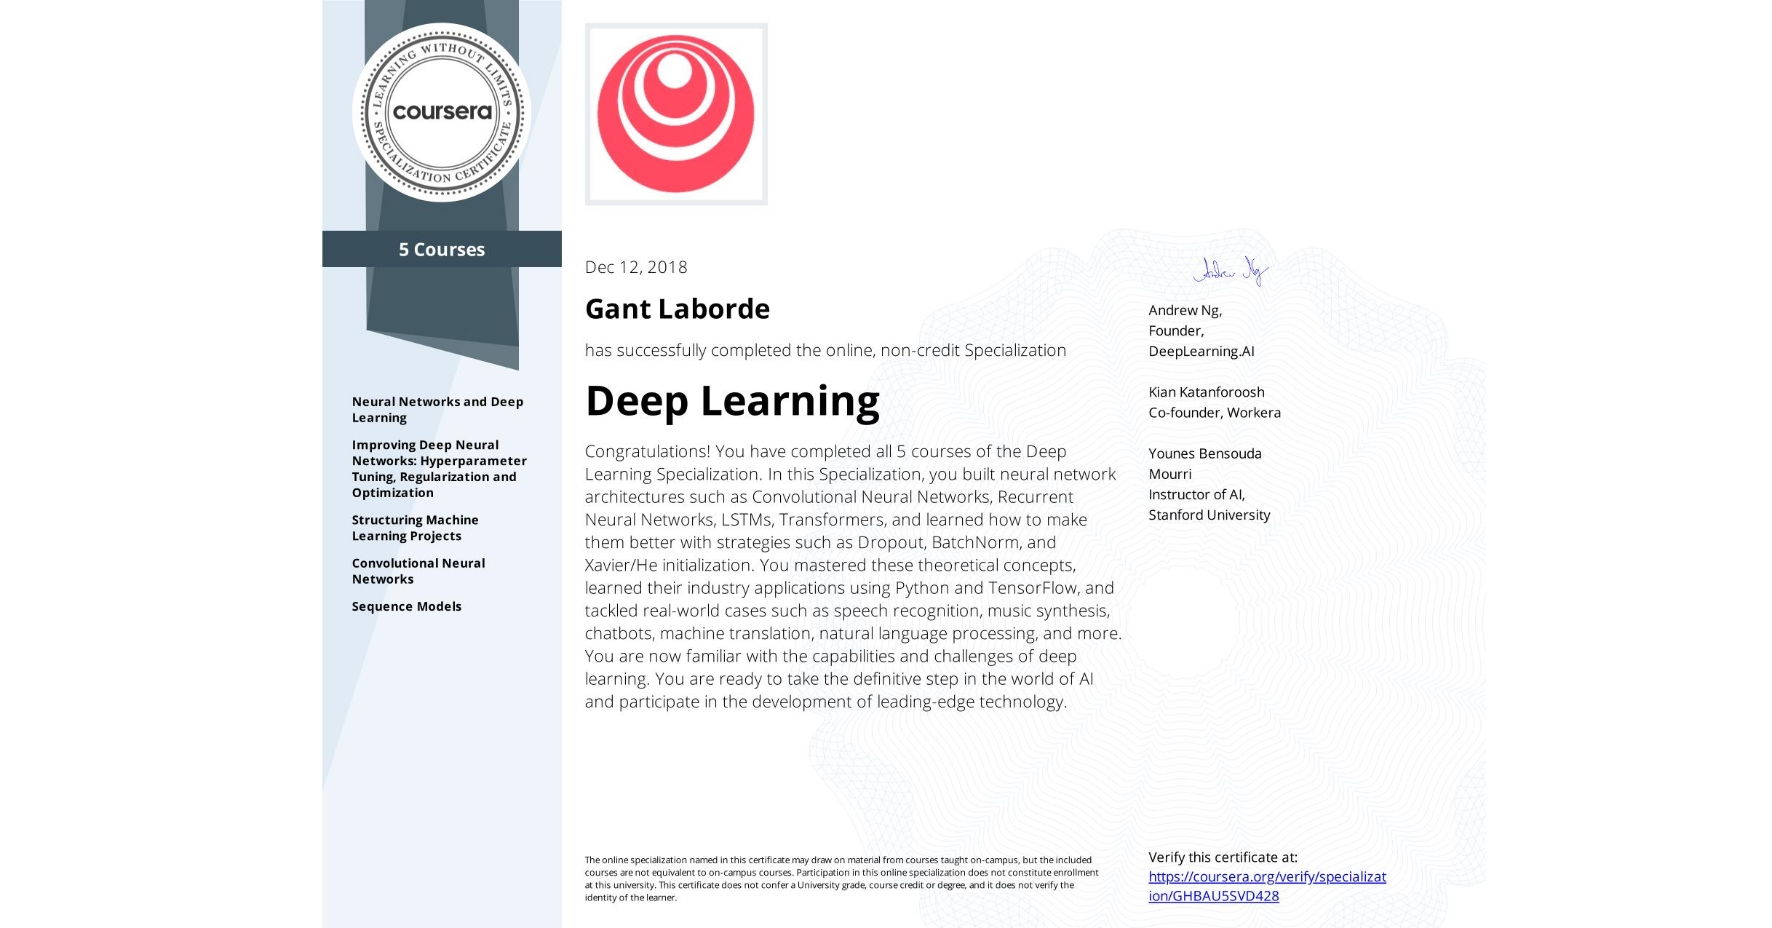 View certificate for Gant Laborde, Deep Learning, offered through Coursera. Congratulations! You have completed all 5 courses of the Deep Learning Specialization.  In this Specialization, you built neural network architectures such as Convolutional Neural Networks, Recurrent Neural Networks, LSTMs, Transformers, and learned how to make them better with strategies such as Dropout, BatchNorm, and Xavier/He initialization. You mastered these theoretical concepts, learned their industry applications using Python and TensorFlow, and tackled real-world cases such as speech recognition, music synthesis, chatbots, machine translation, natural language processing, and more.  You are now familiar with the capabilities and challenges of deep learning. You are ready to take the definitive step in the world of AI and participate in the development of leading-edge technology.